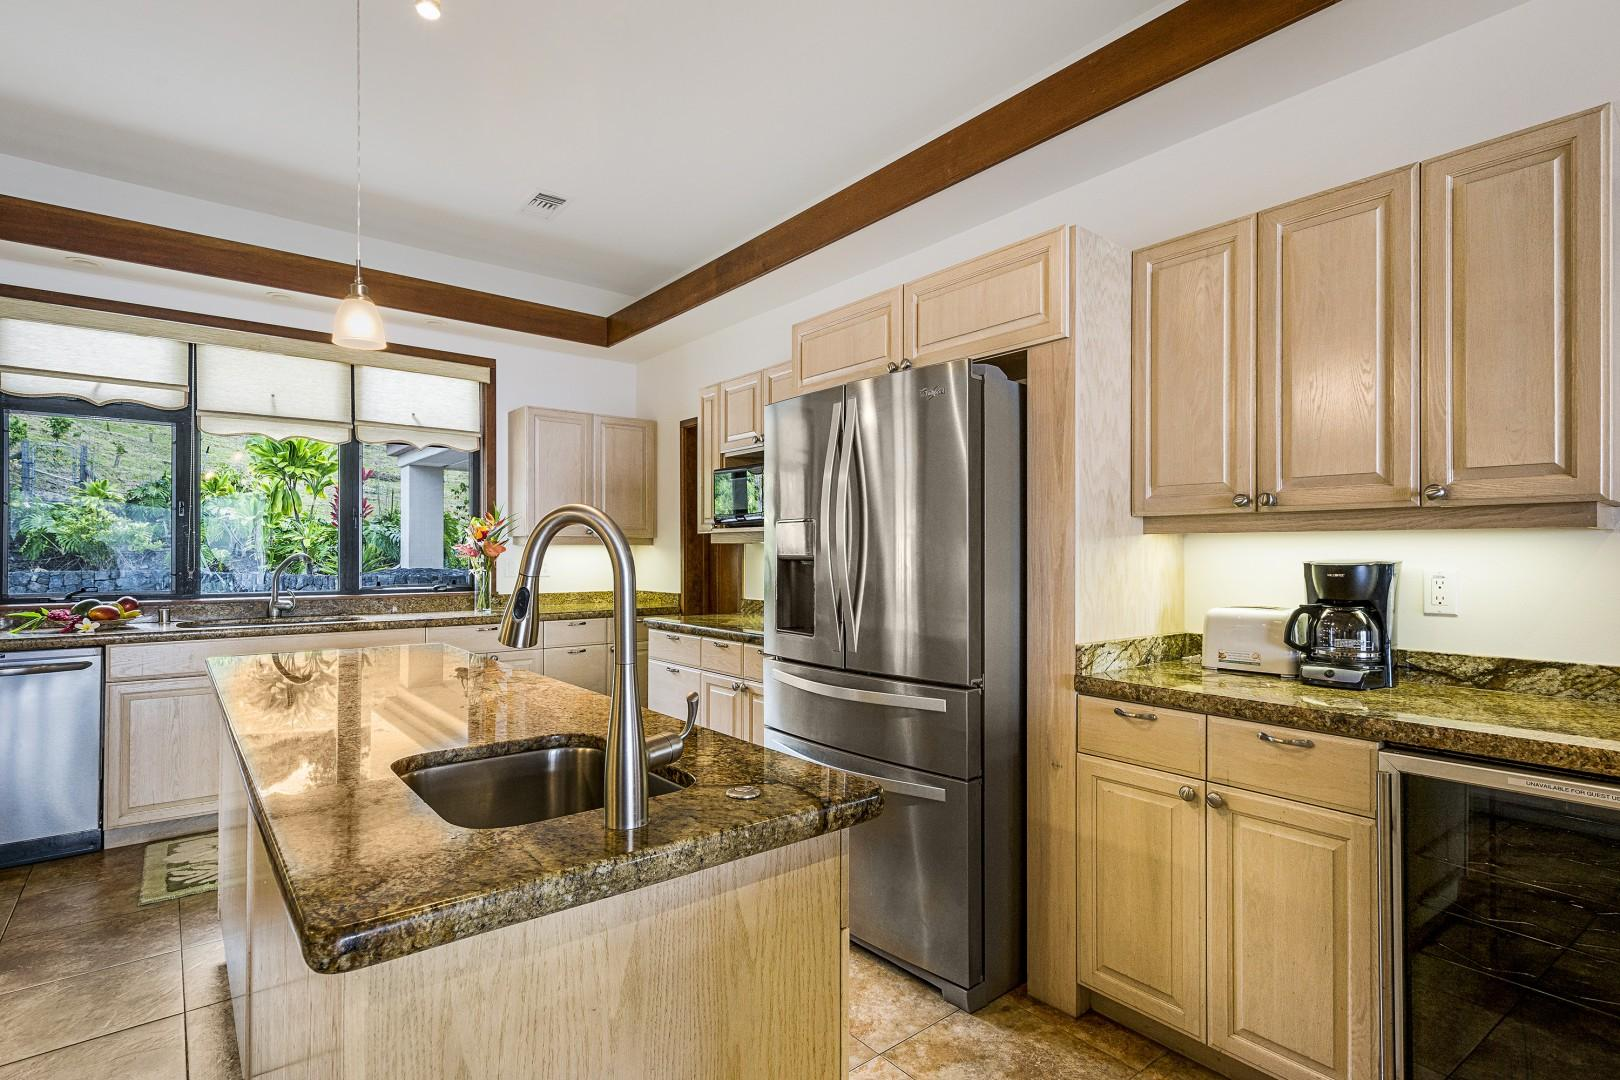 This kitchen is equipped with two sinks for your convenience